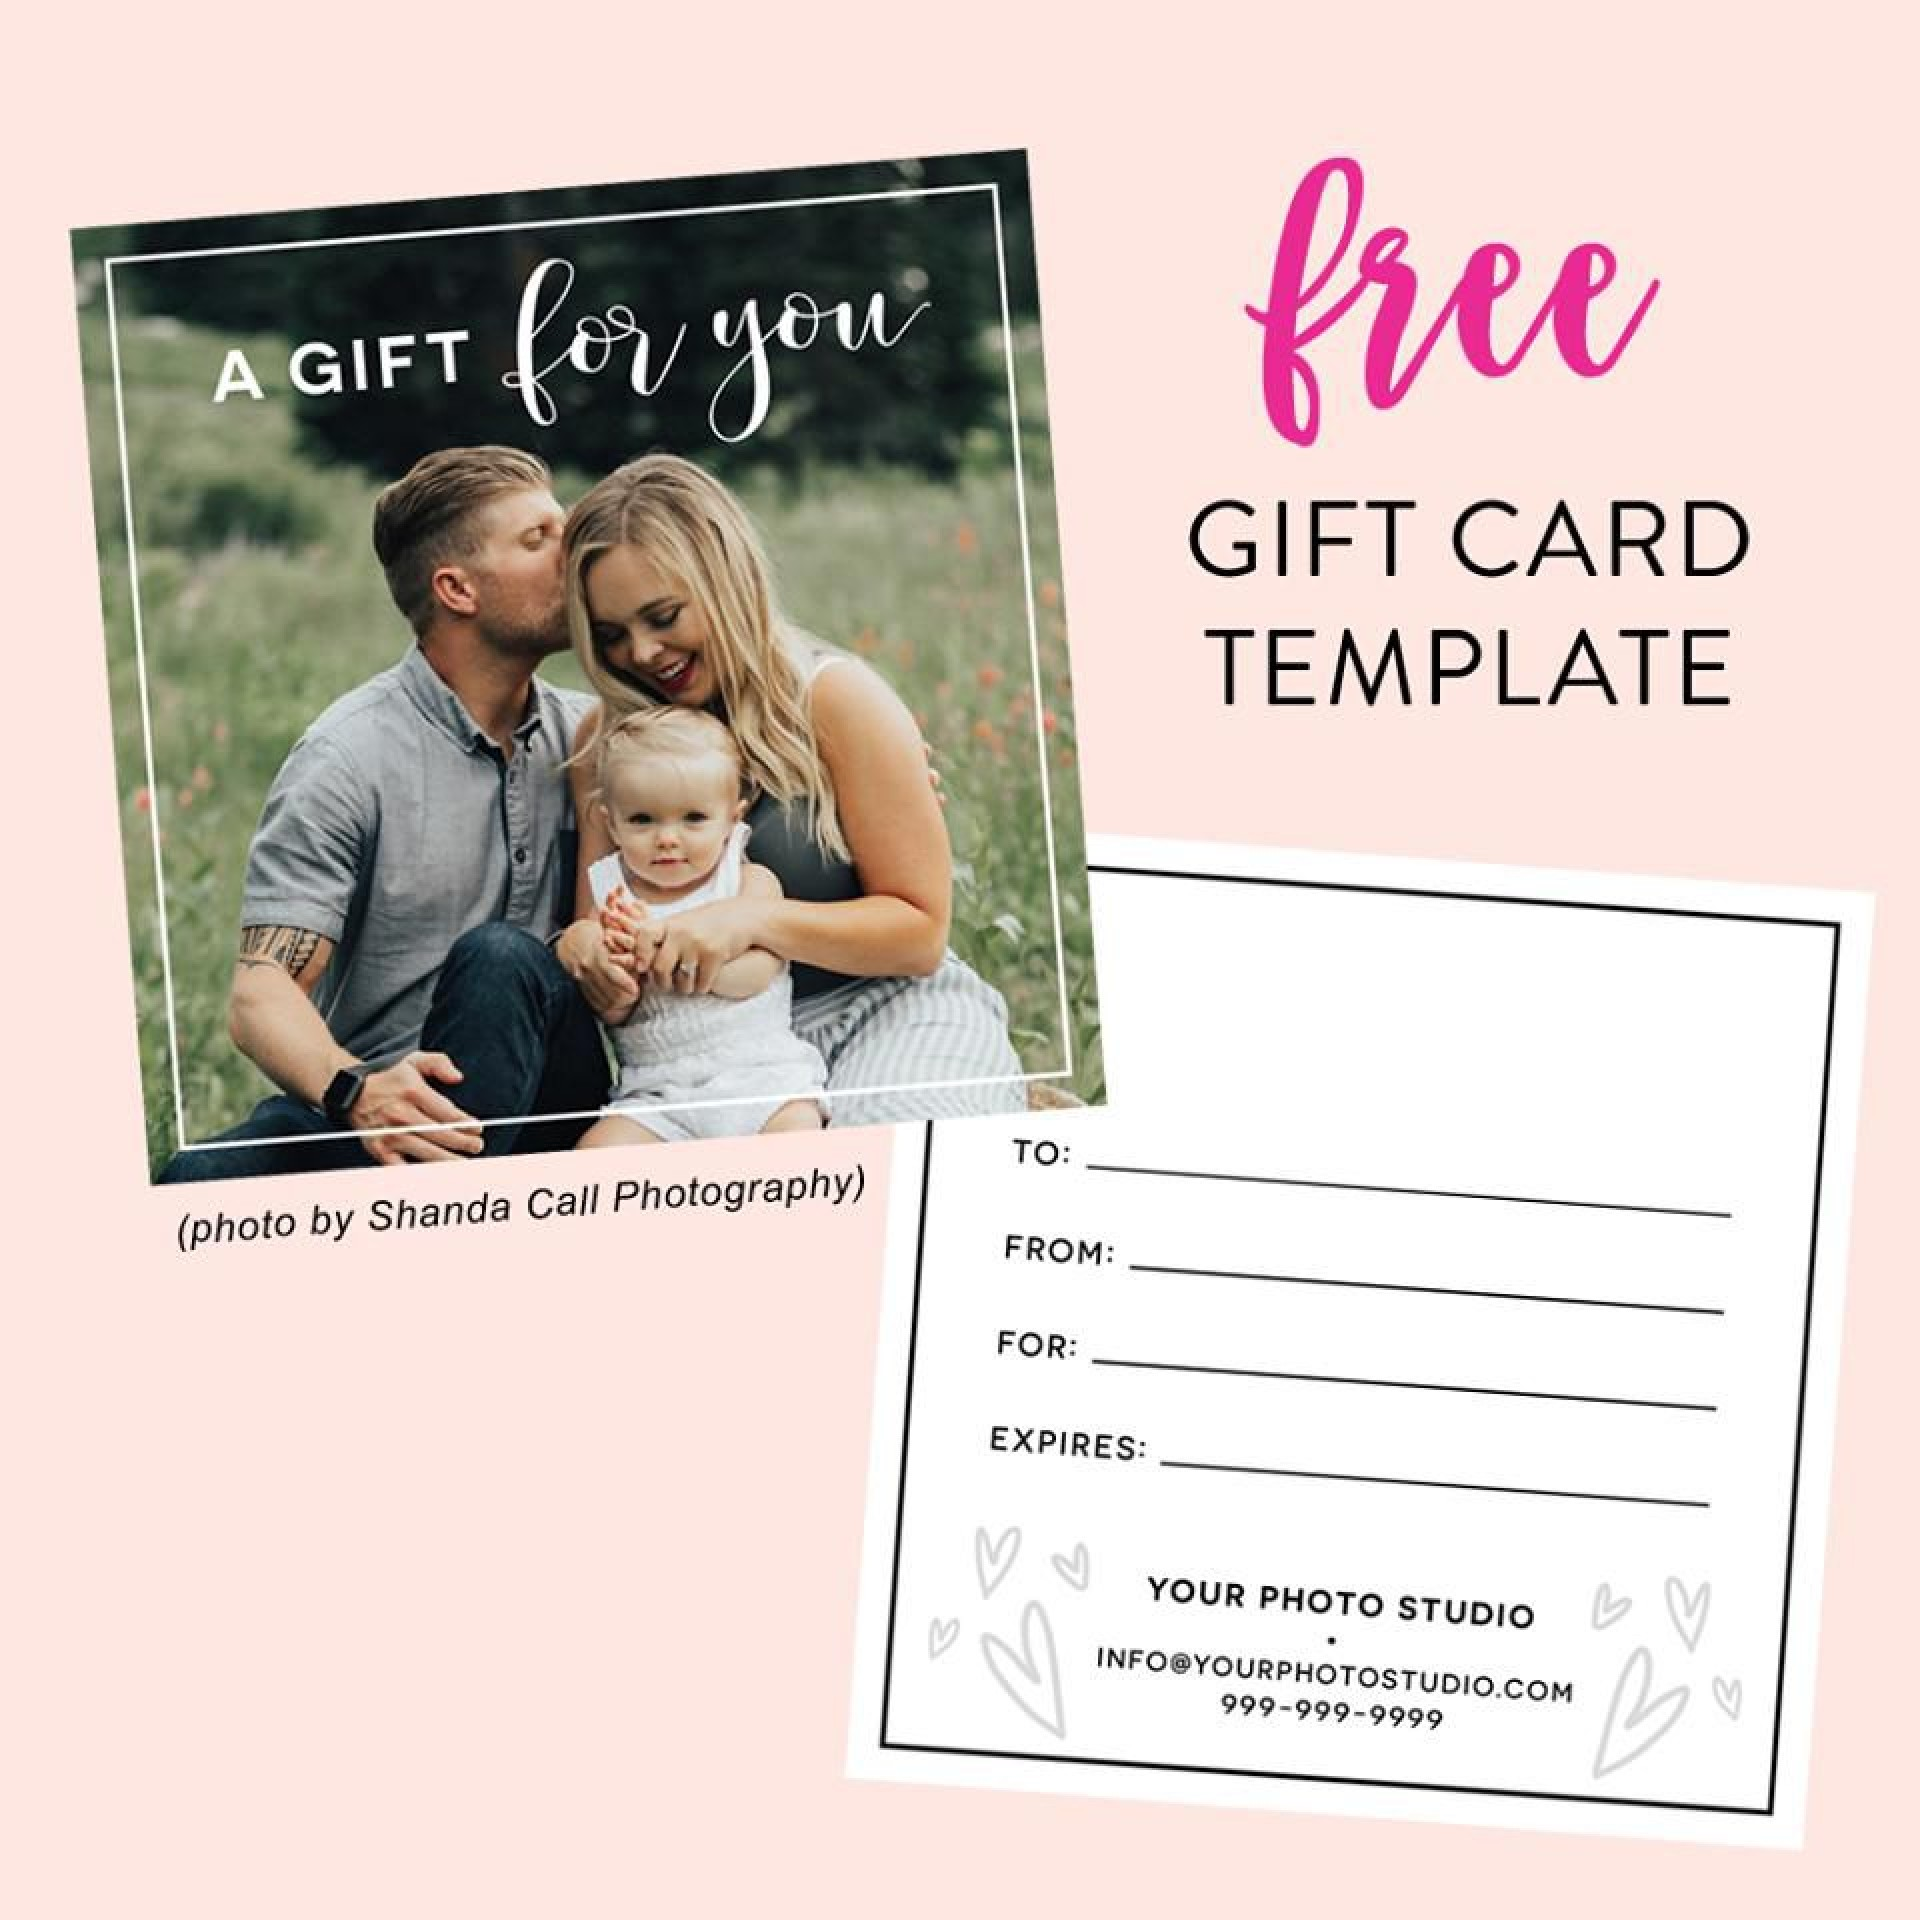 007 Unforgettable Photography Session Gift Certificate Template High Definition  Photo Free Photoshoot1920